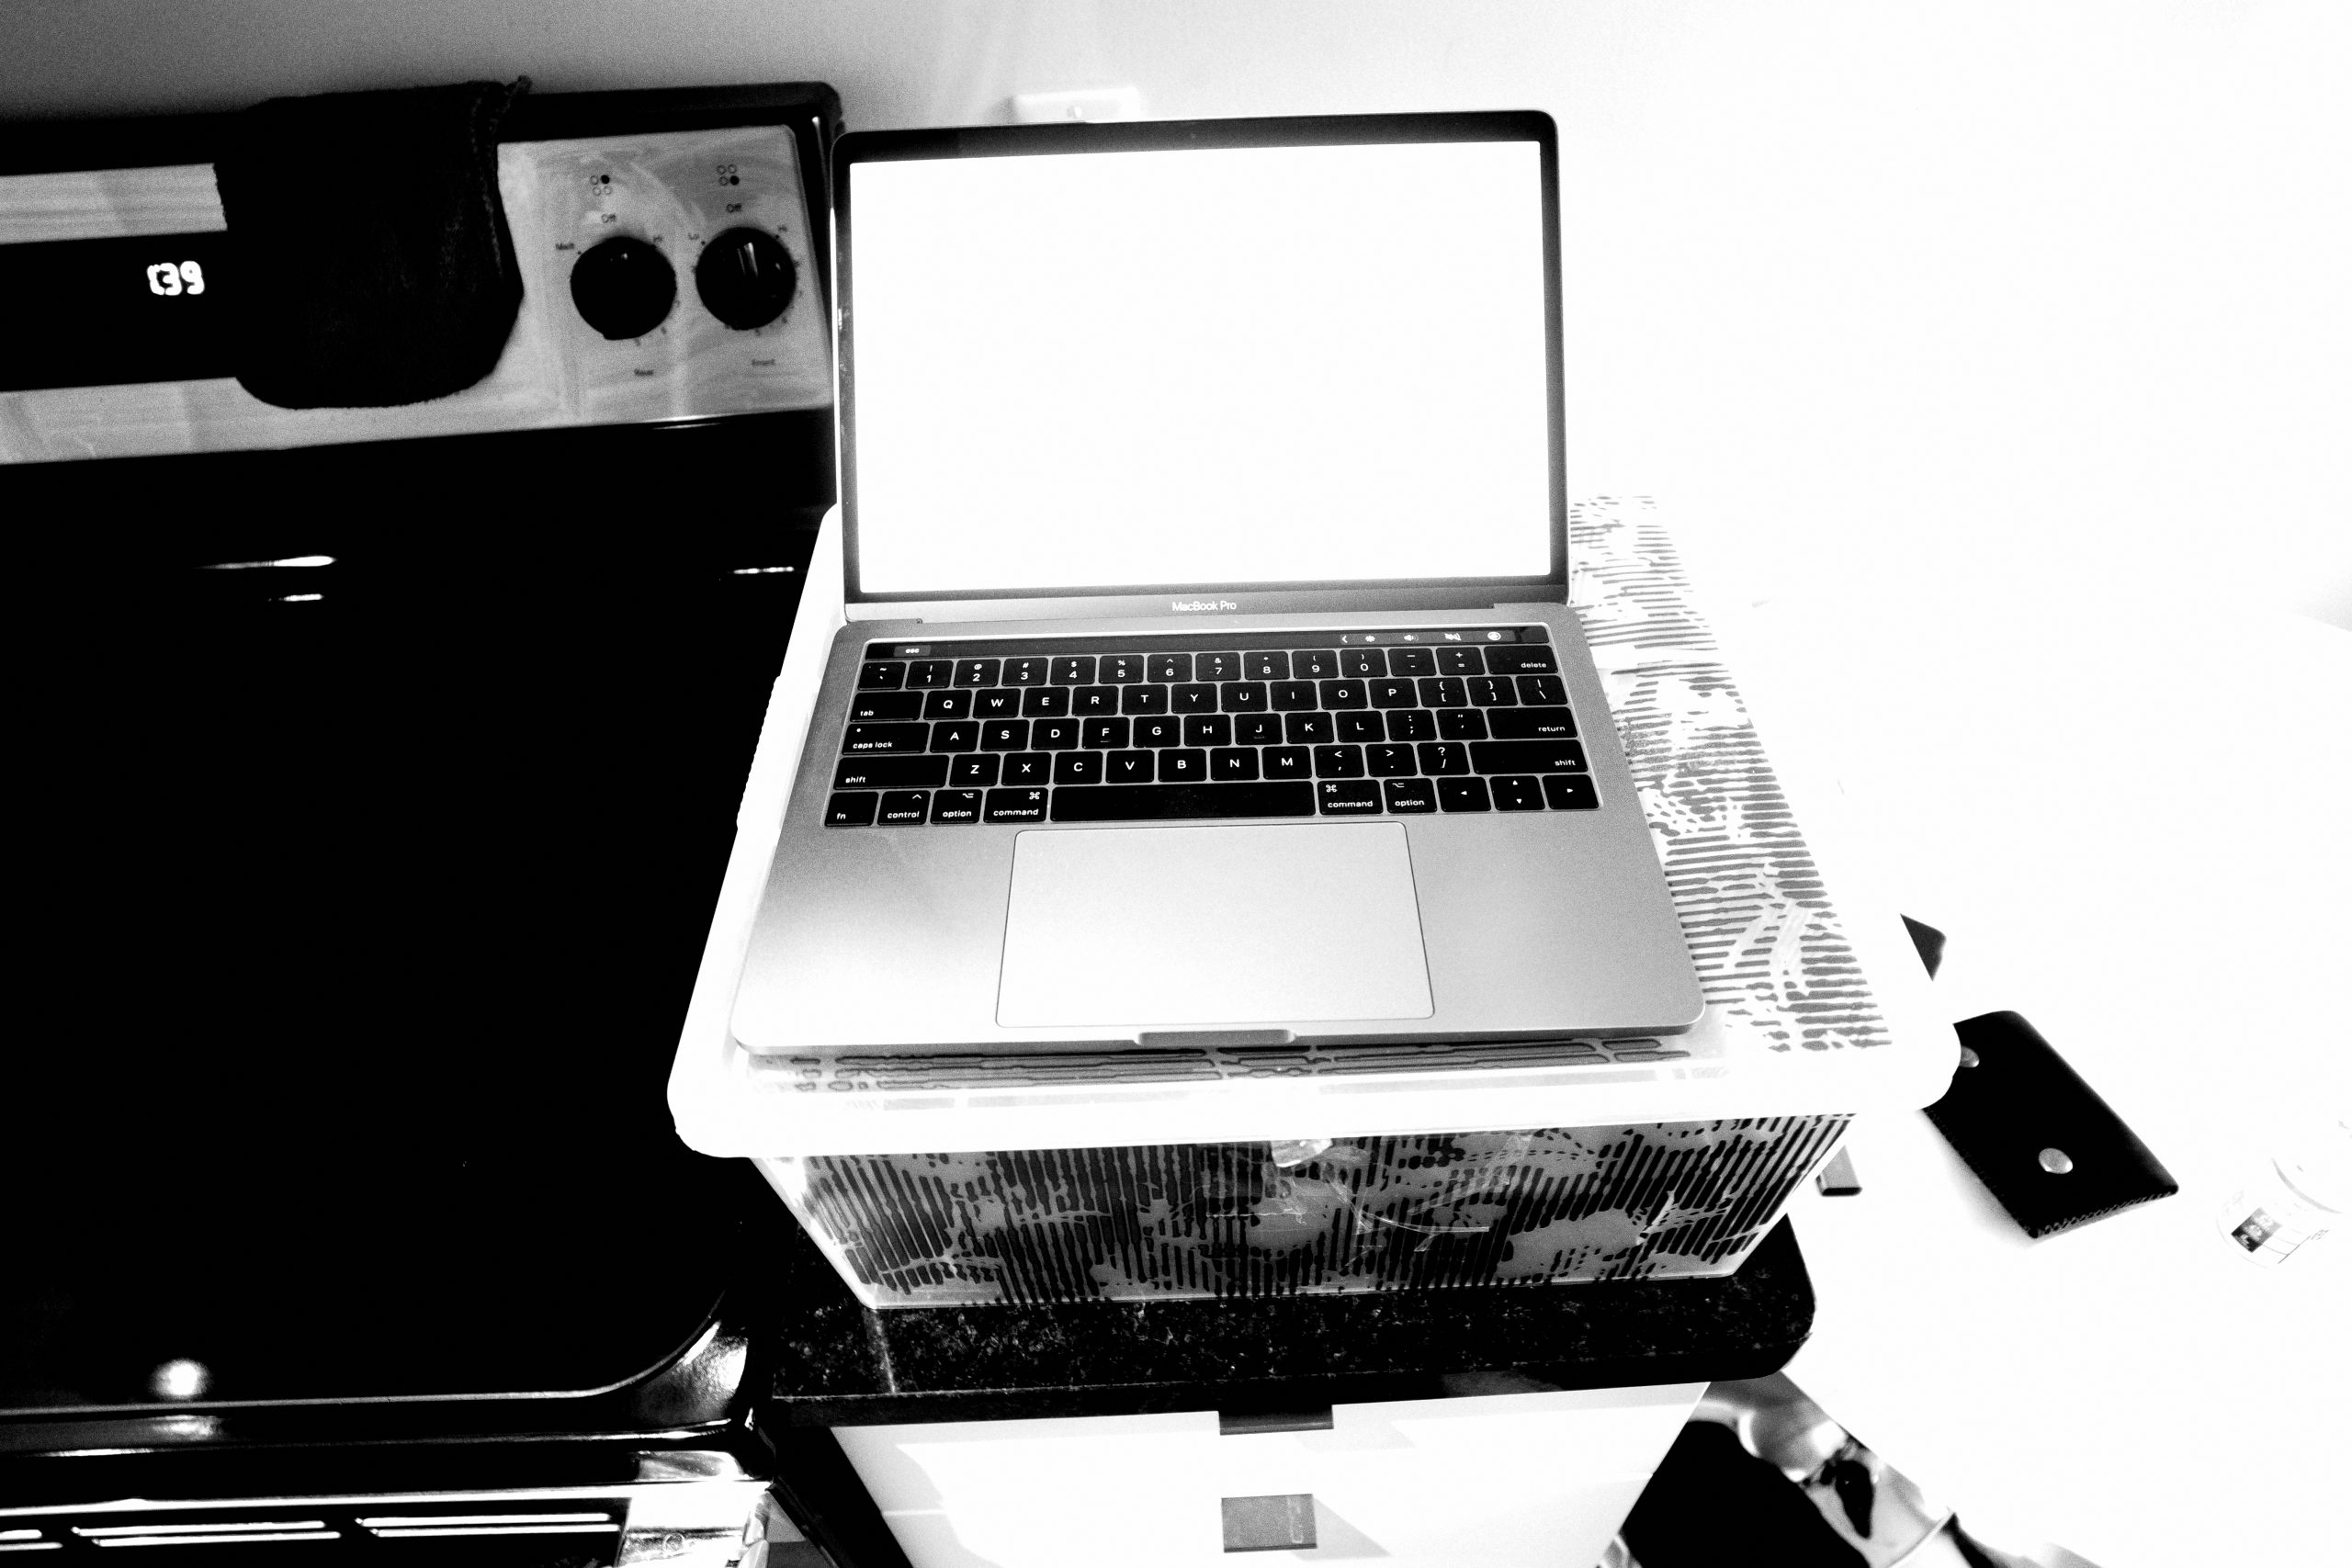 My laptop and ghetto standing desk